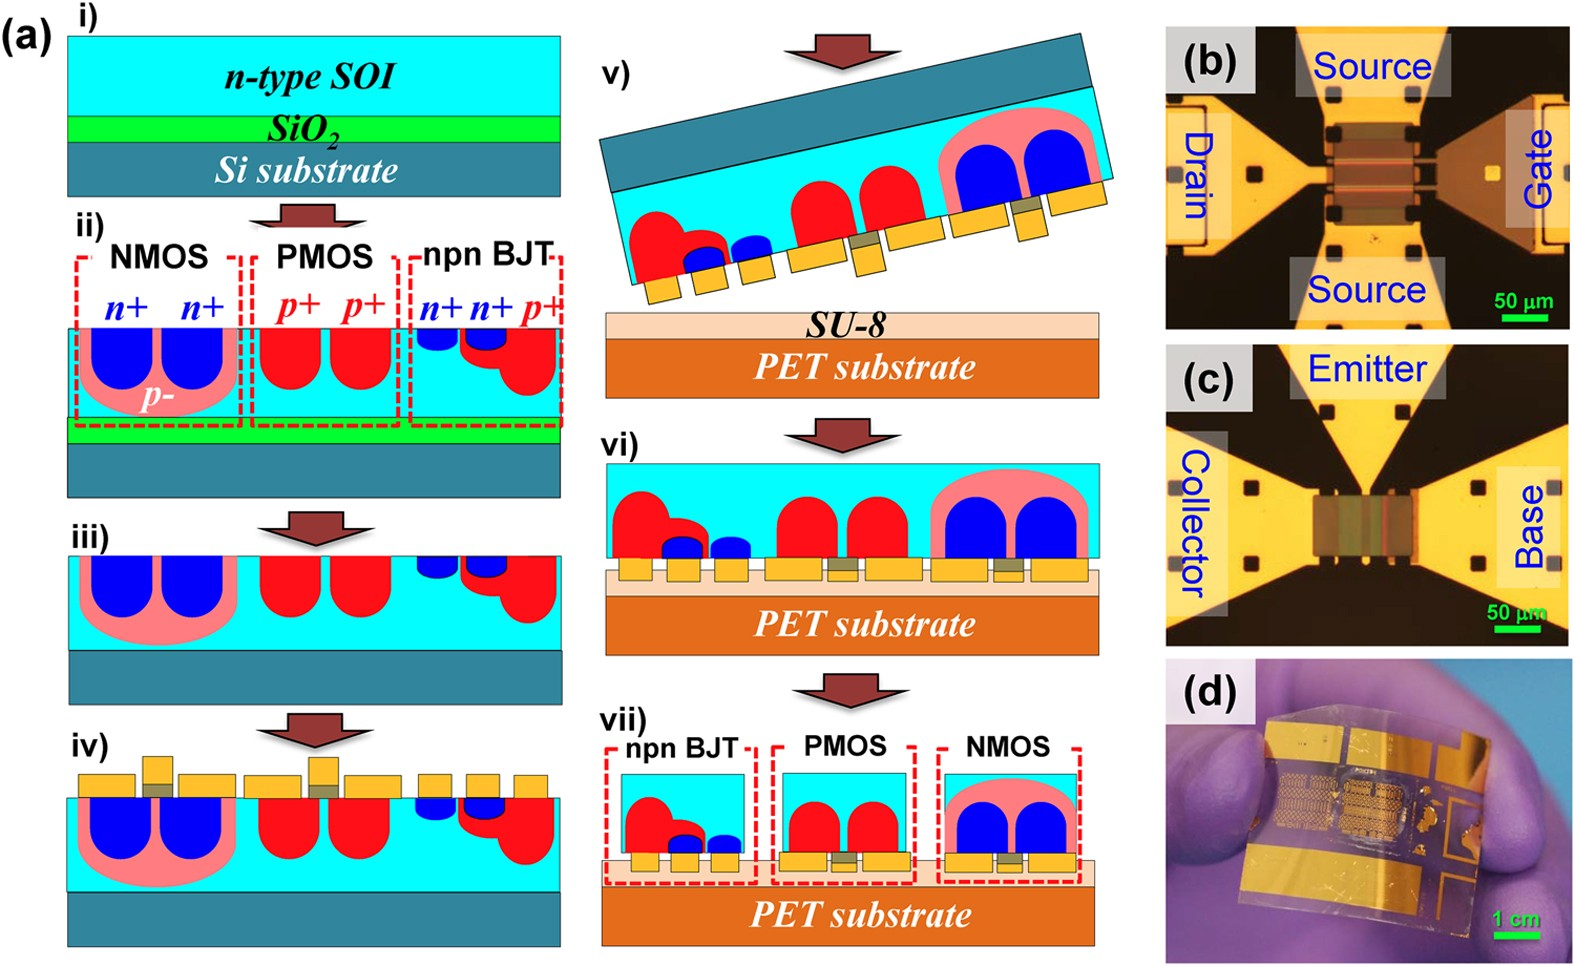 High Performance Flexible Bicmos Electronics Based On Single Crystal Oscillator With Cmos Inverter Si Nanomembrane Npj